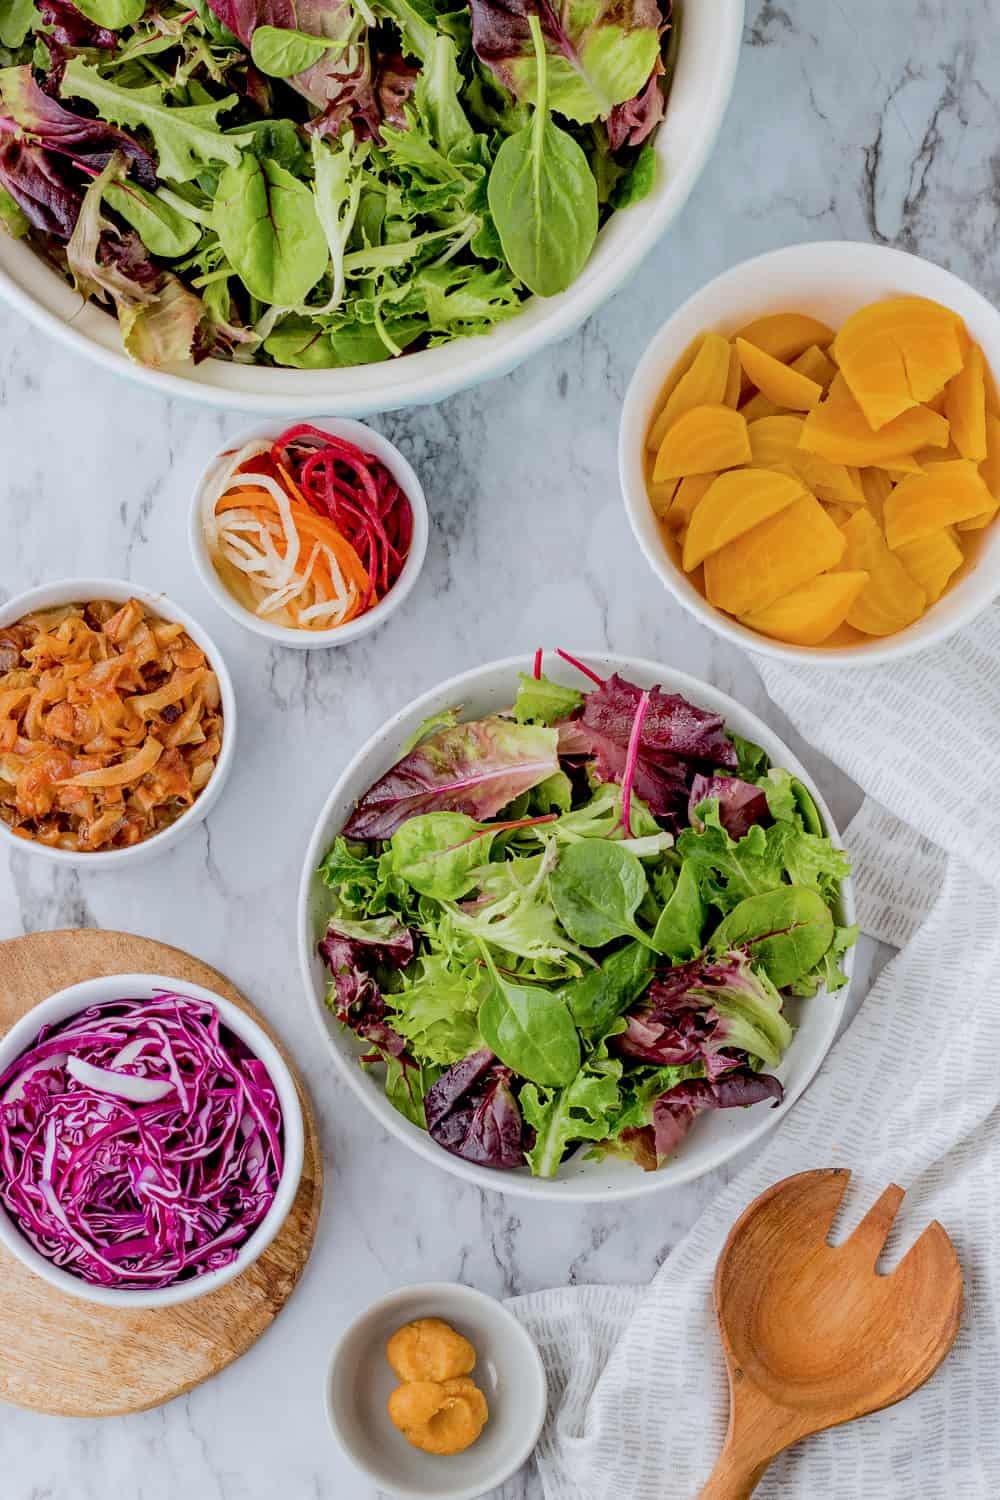 Lettuce, gold beets, caramelized onions, red cabbage, and miso in white bowls with wood spoon on marble.